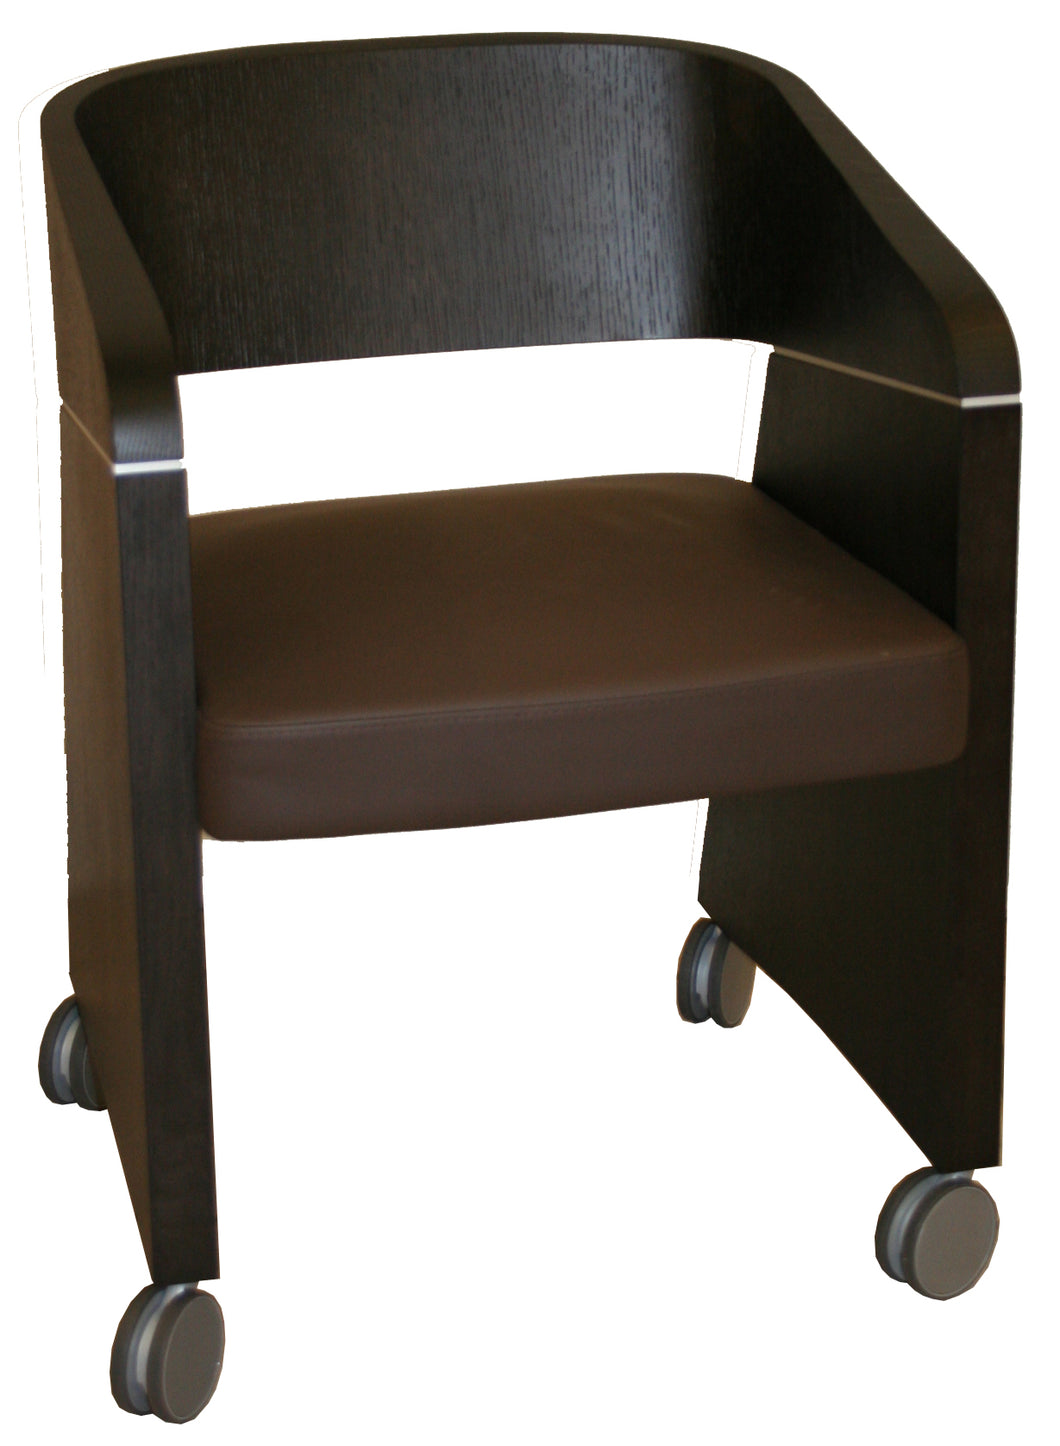 Chair - Apple Con Wenge Shell Brown Leather Seat